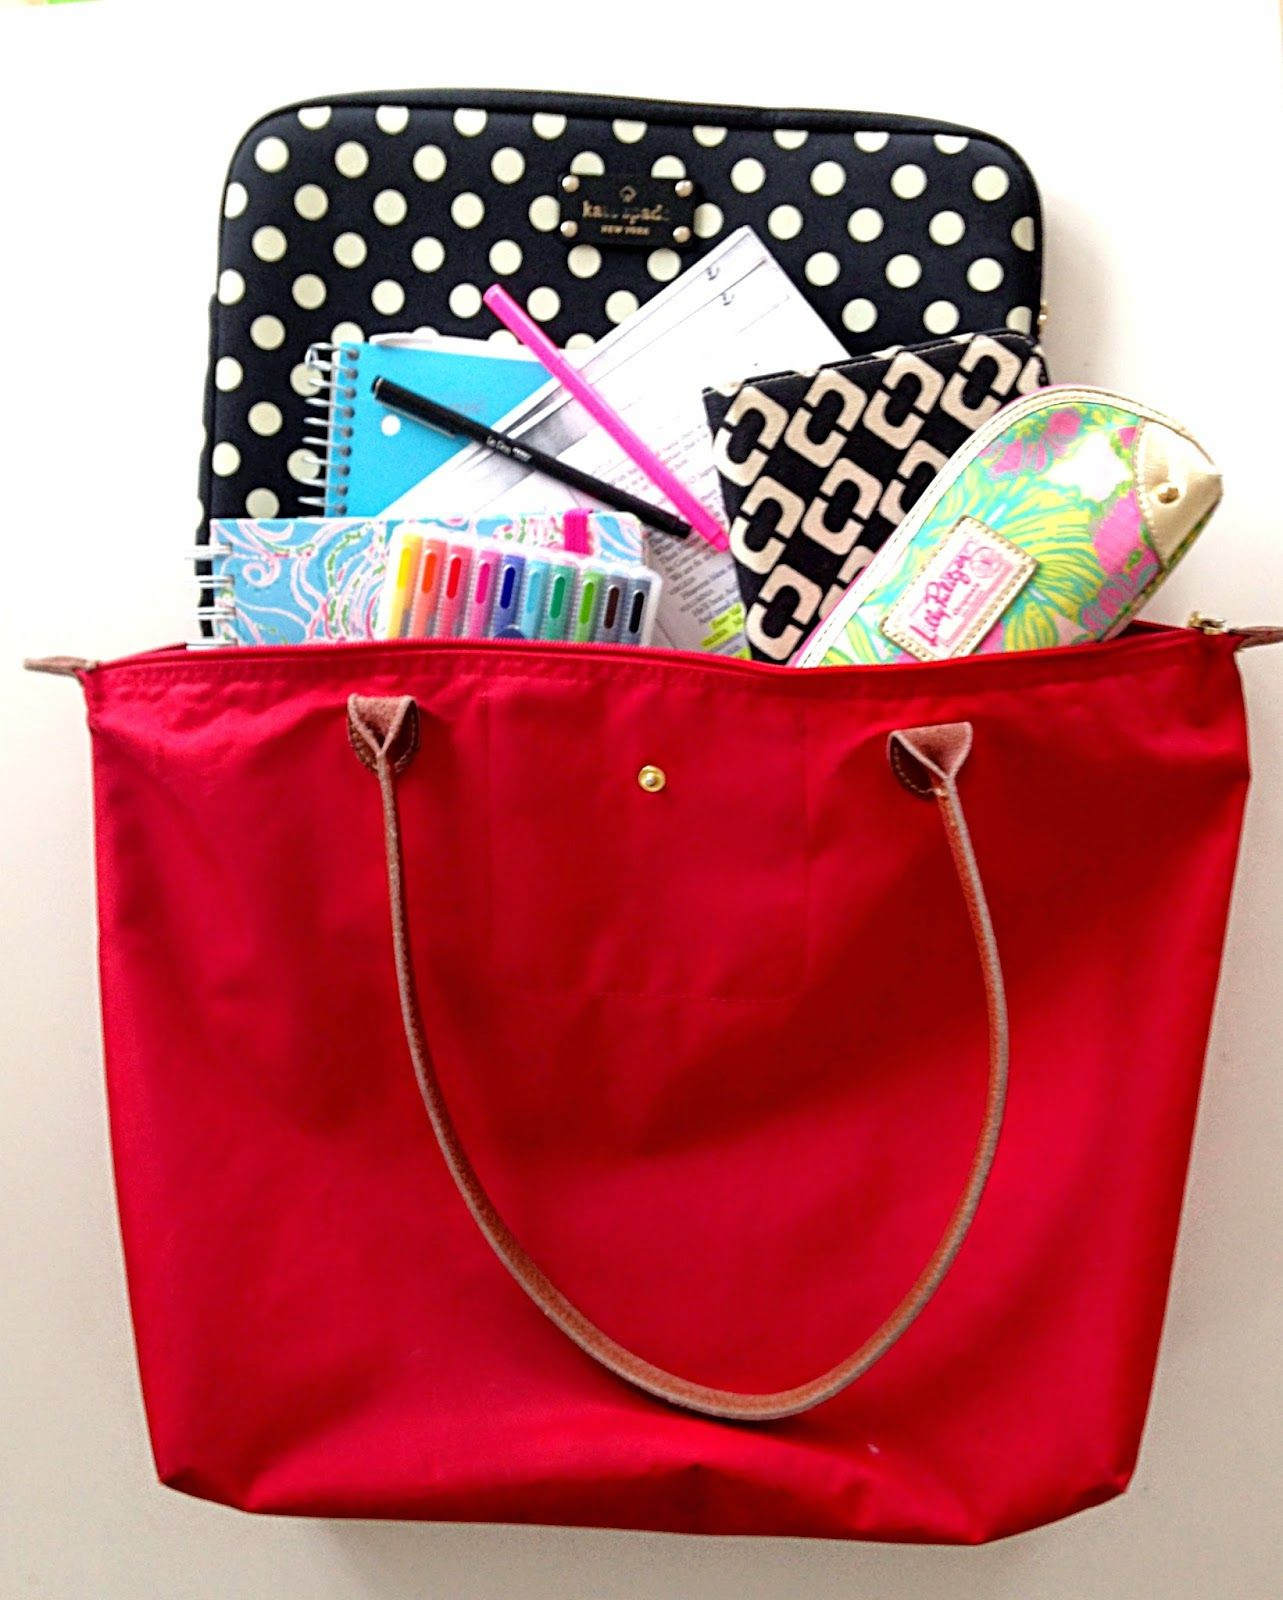 4e162fc1eec Check out what I carry in my school bag! handbagsandheartbeats ...